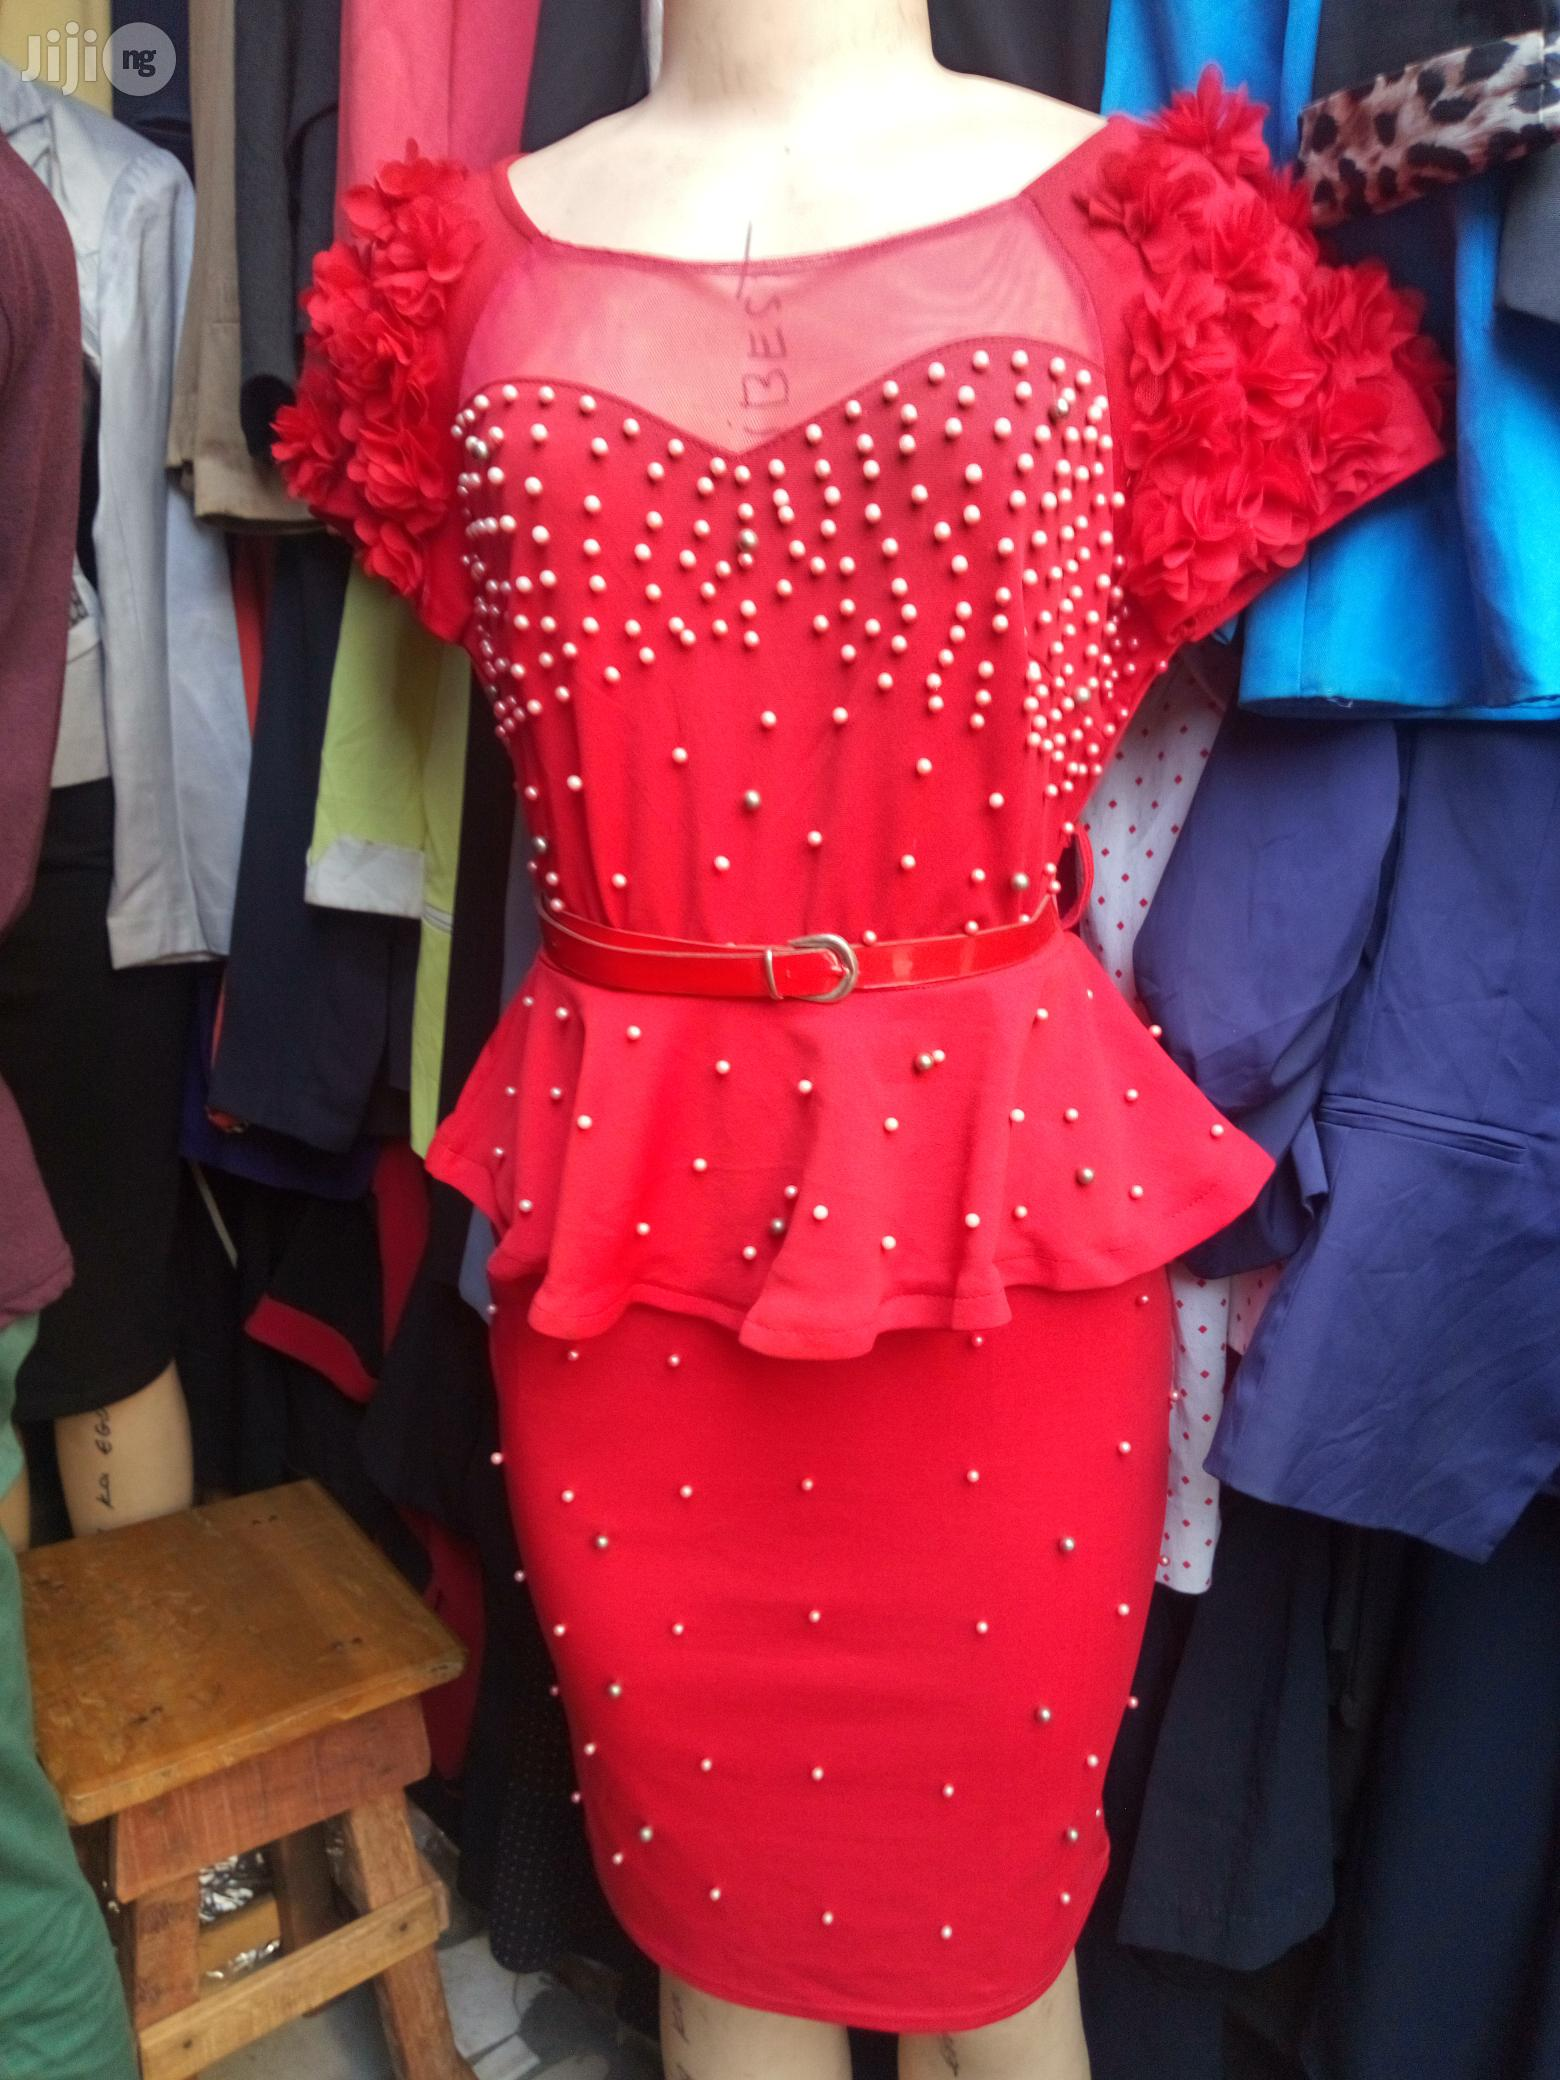 Fancy Dress / Gown With Beads for Occasions   Clothing for sale in Ikeja, Lagos State, Nigeria